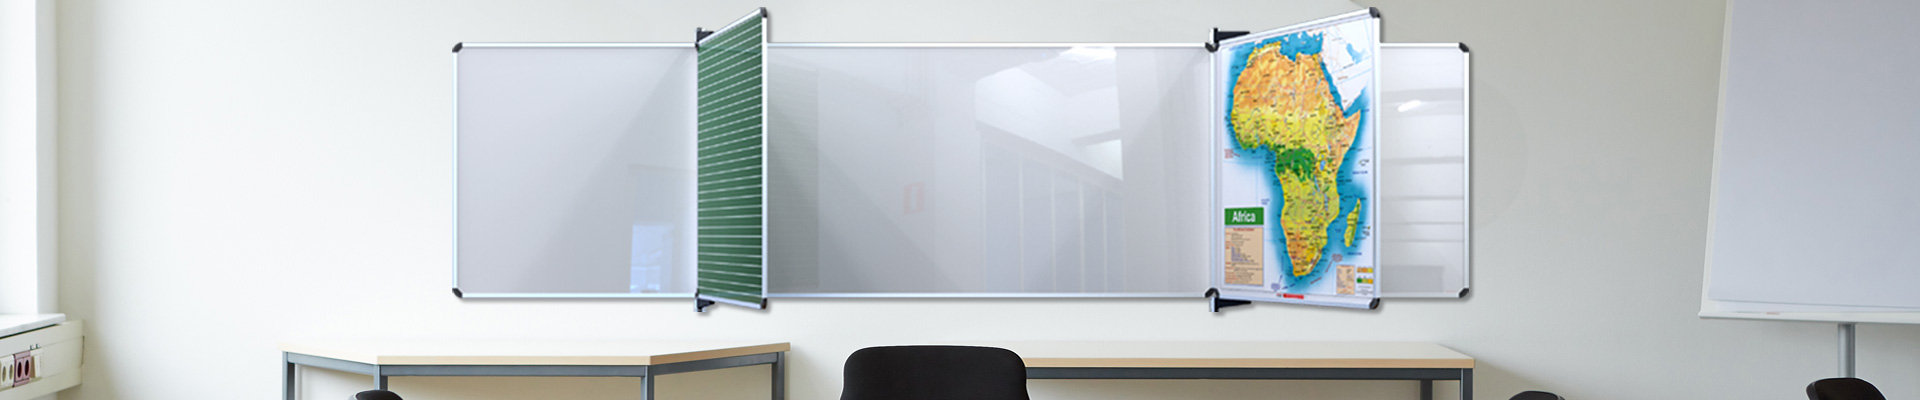 Educational Boards in Classroom